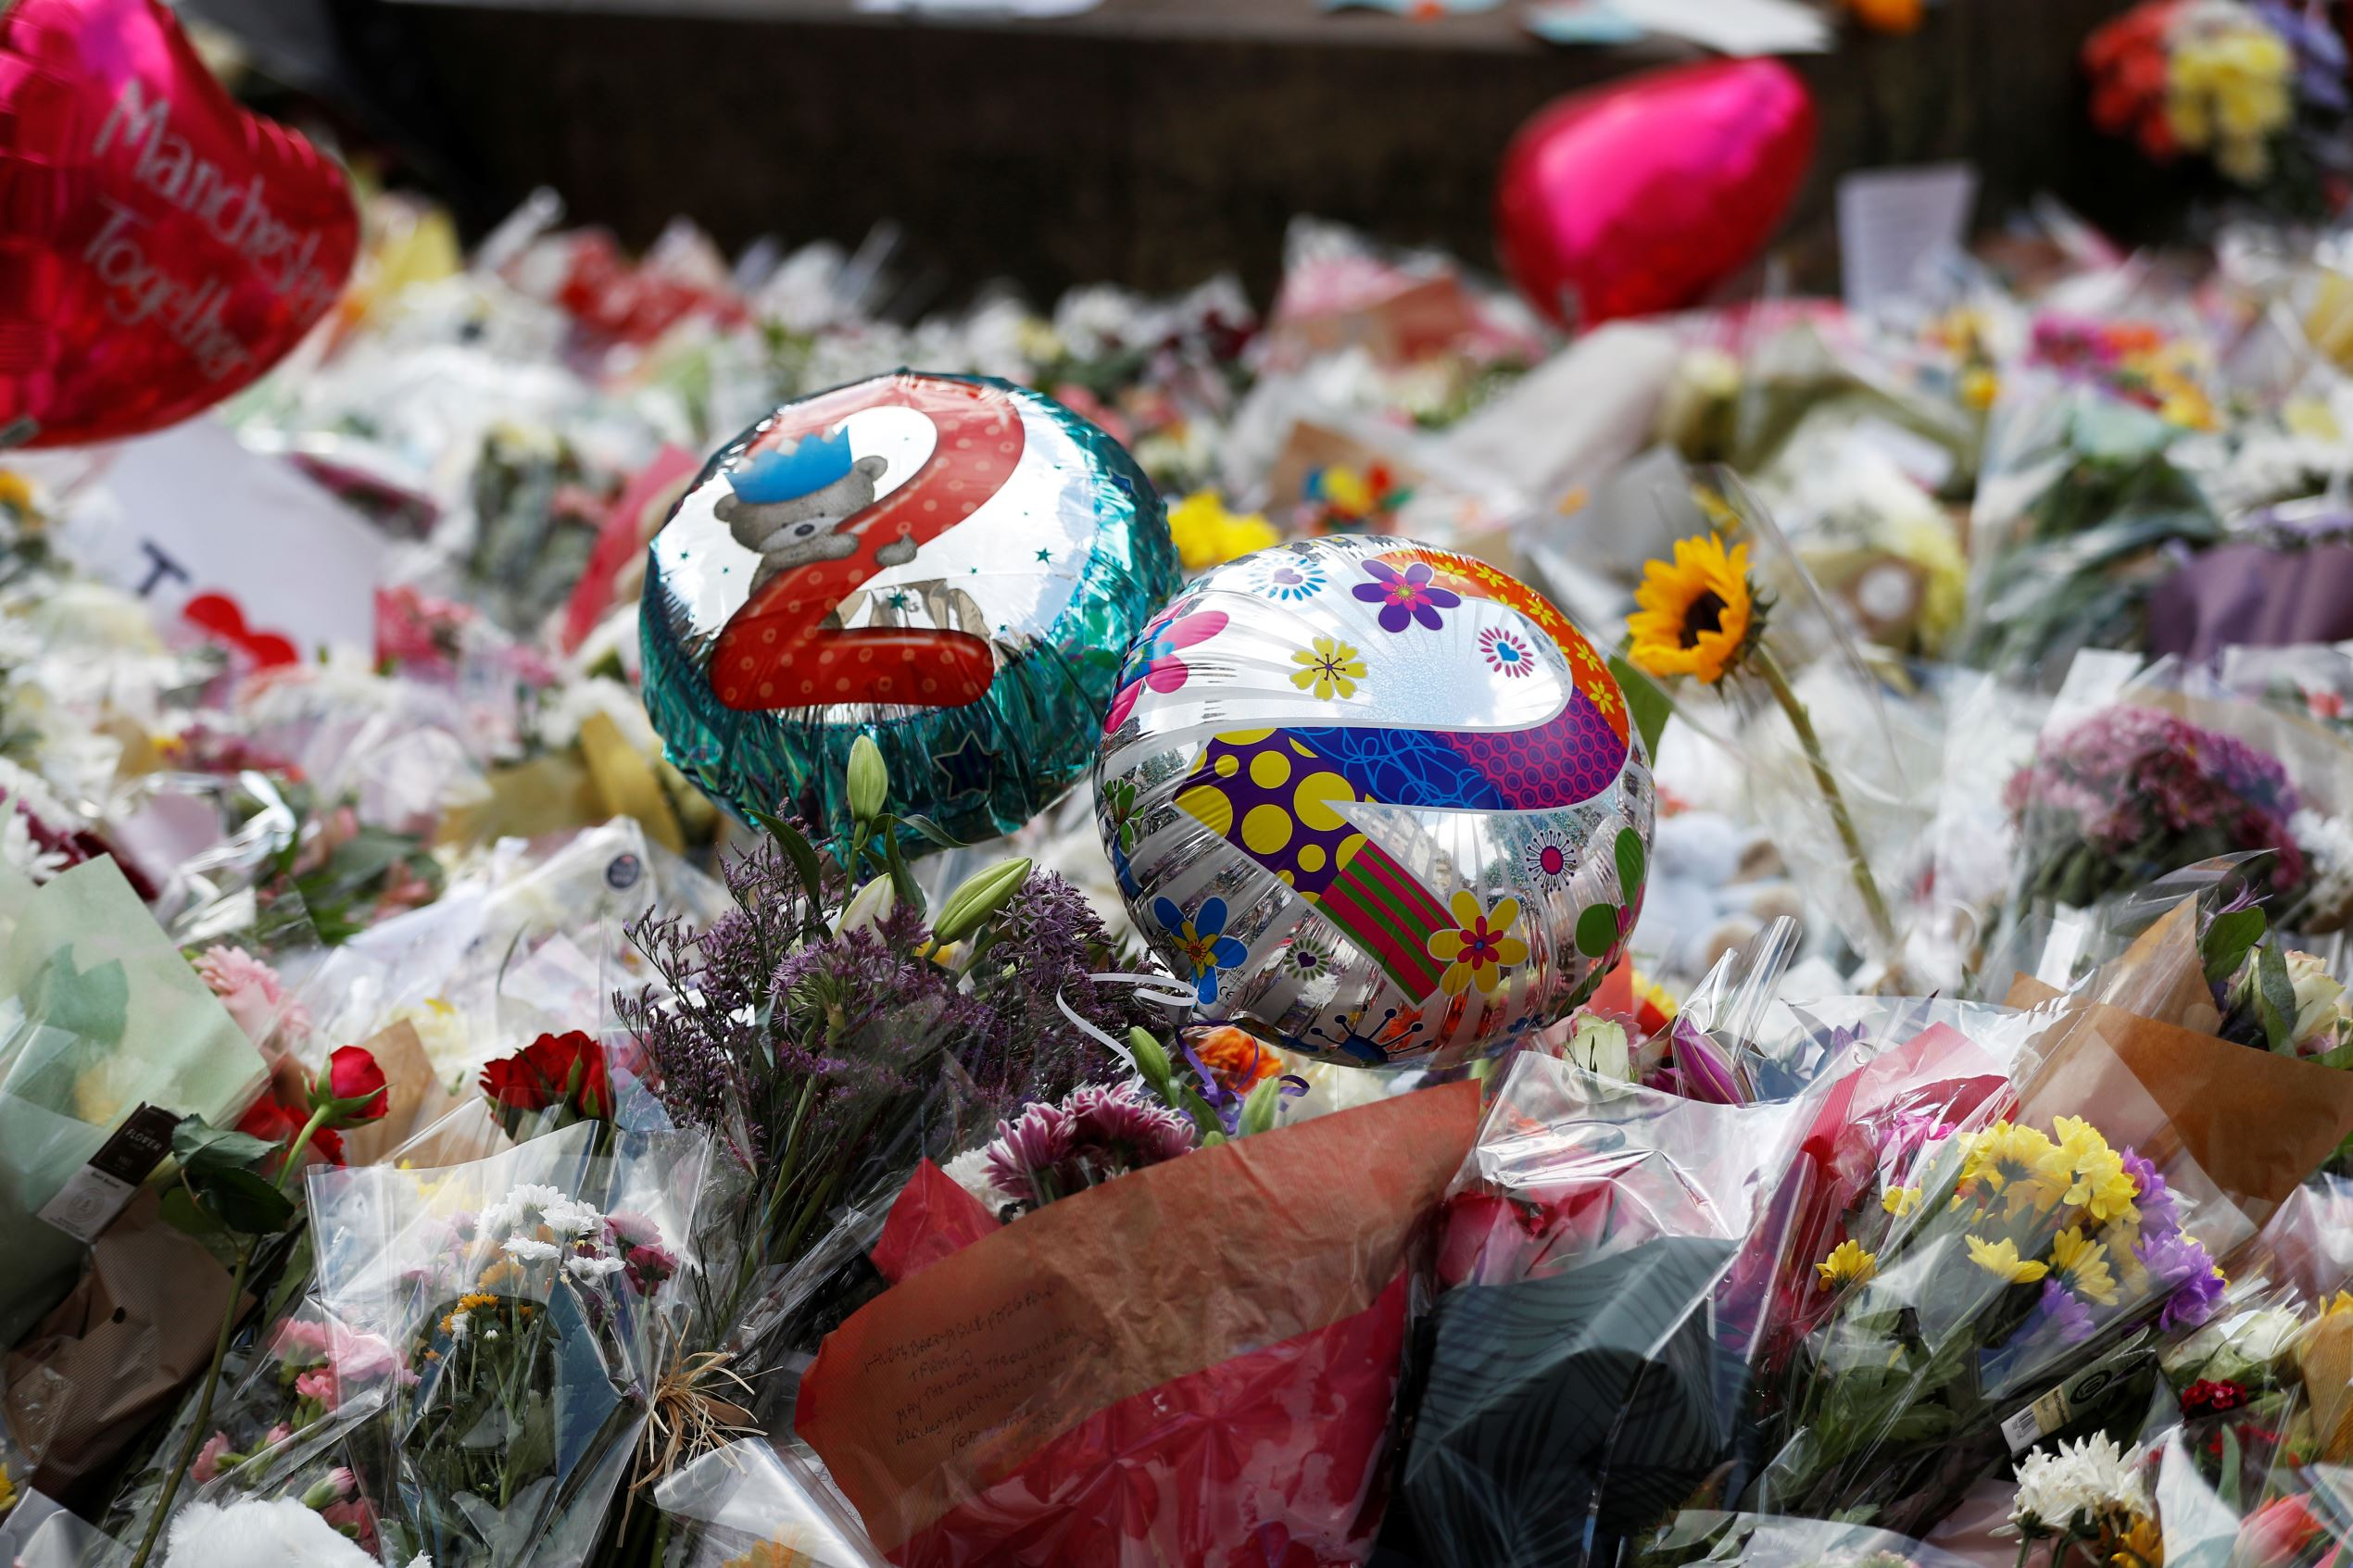 Balloons and floral tributes for the victims of the attack on the Manchester Arena are seen in St Ann's square in Manchester, Britain, May 24, 2017.